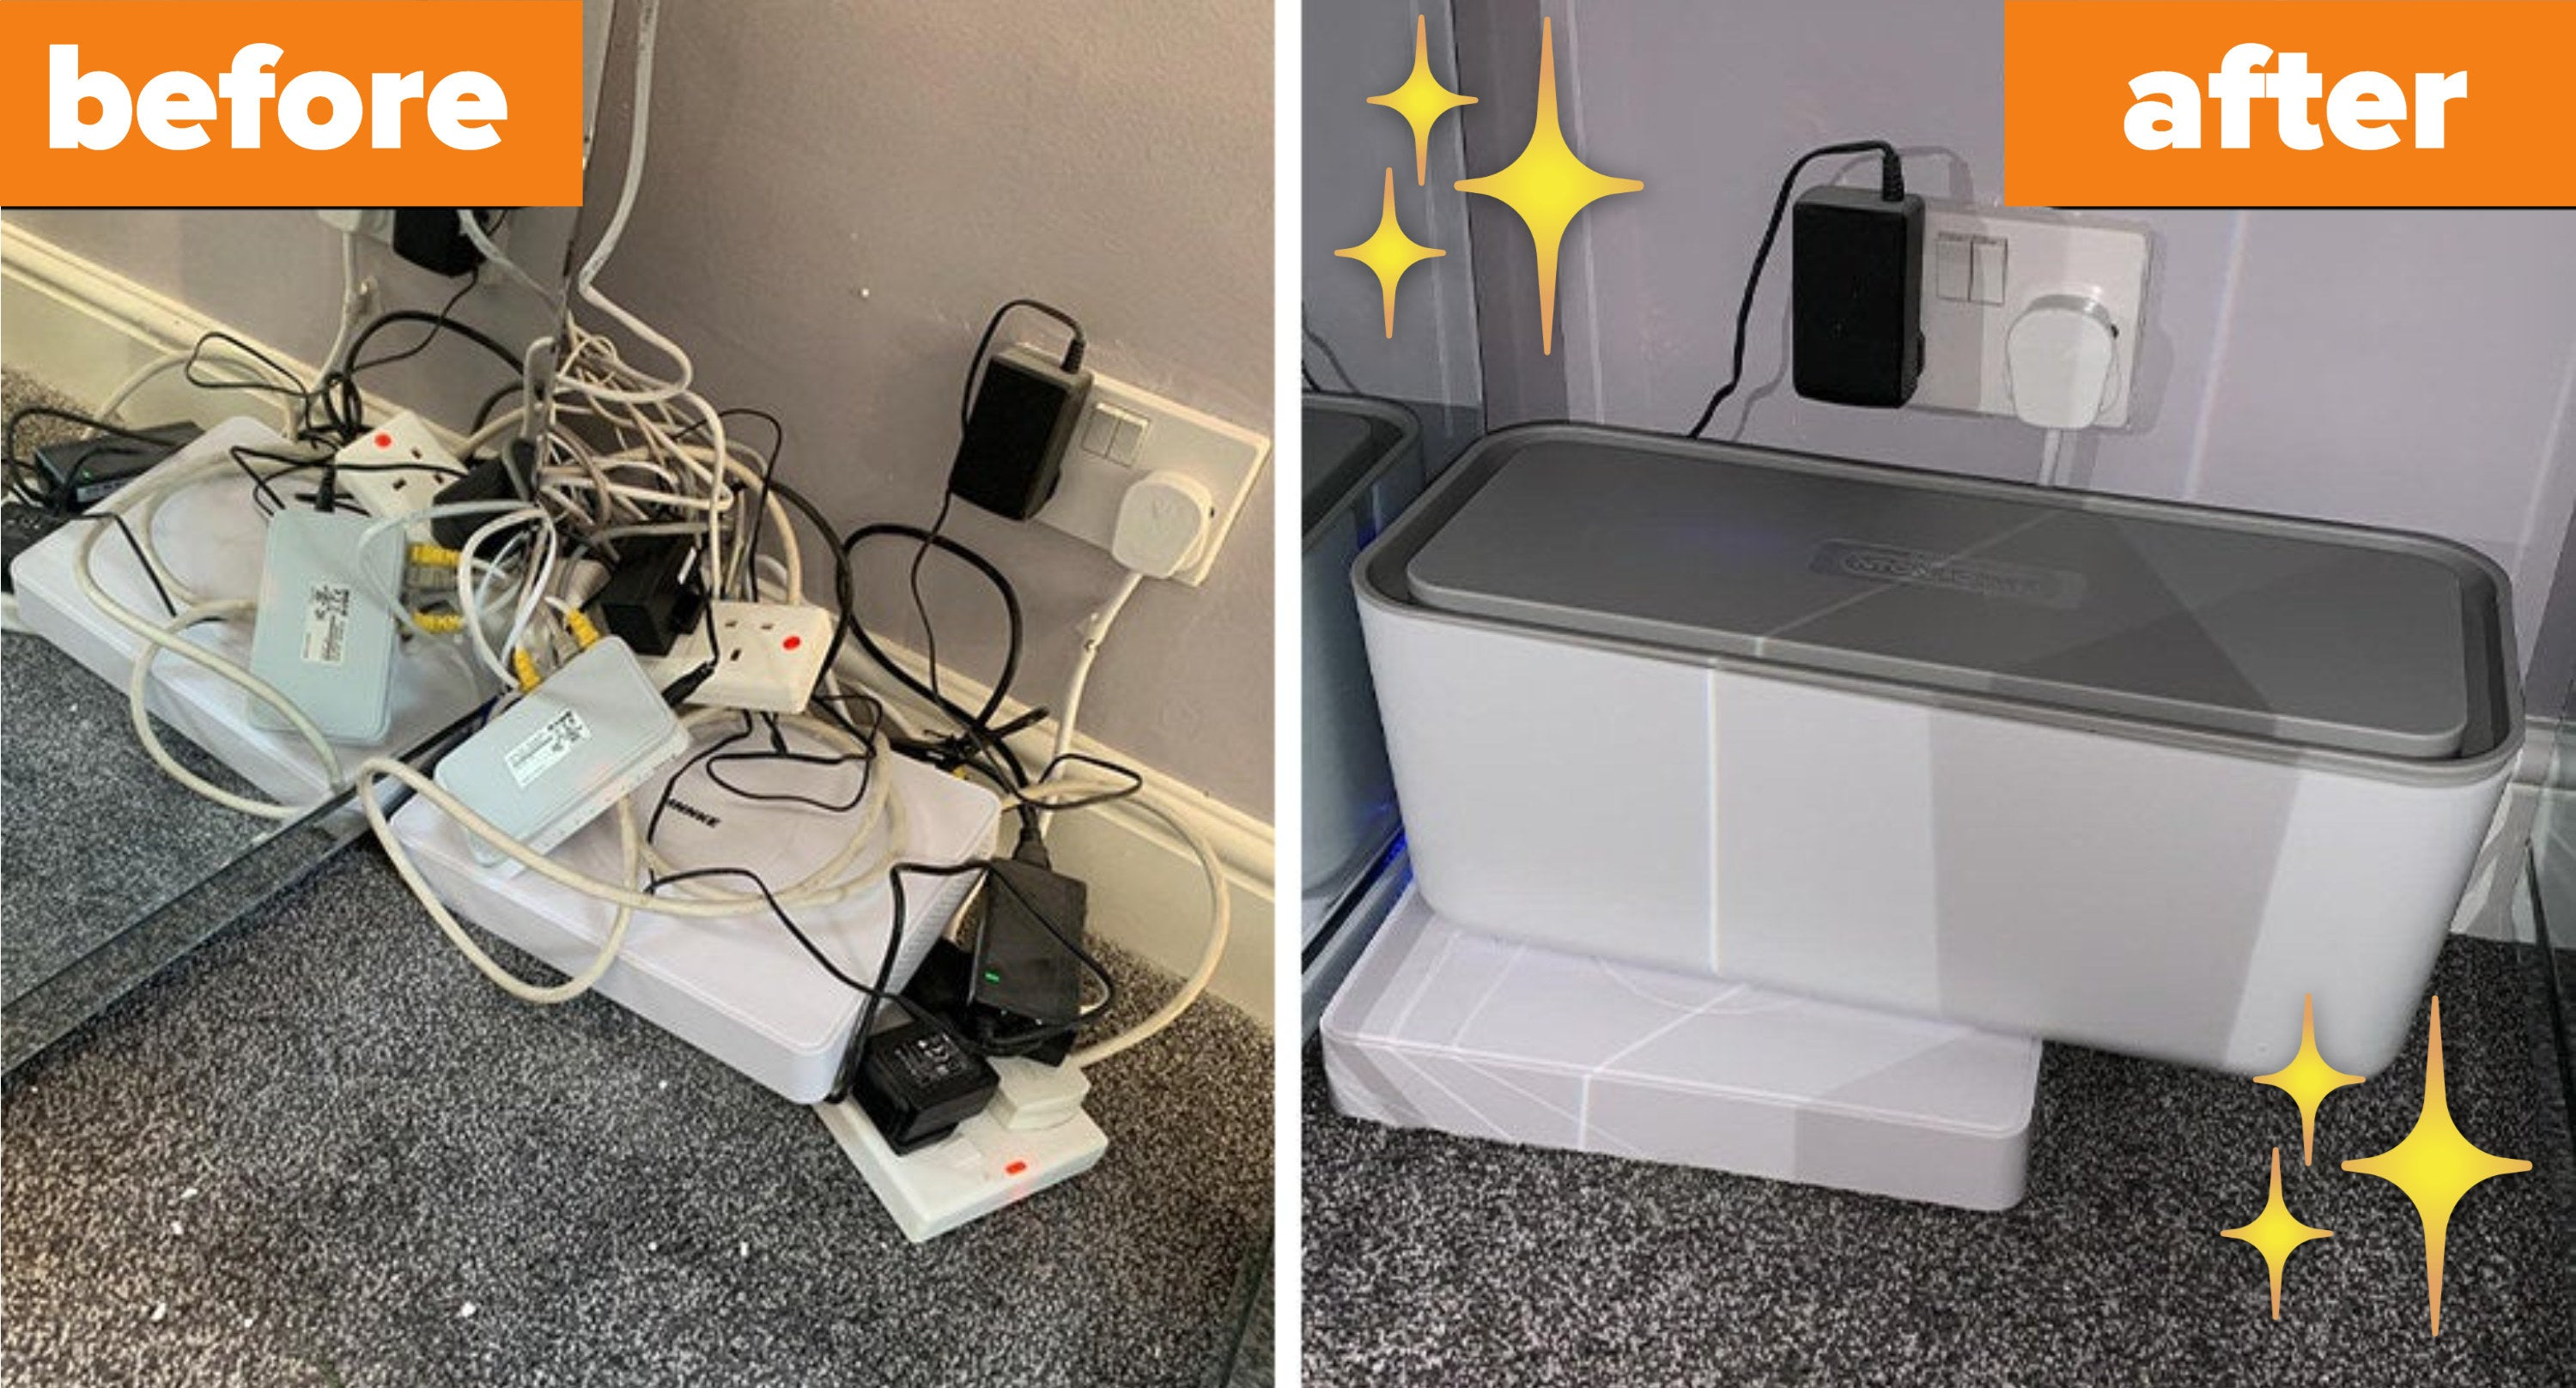 The before and after images of the cable management box